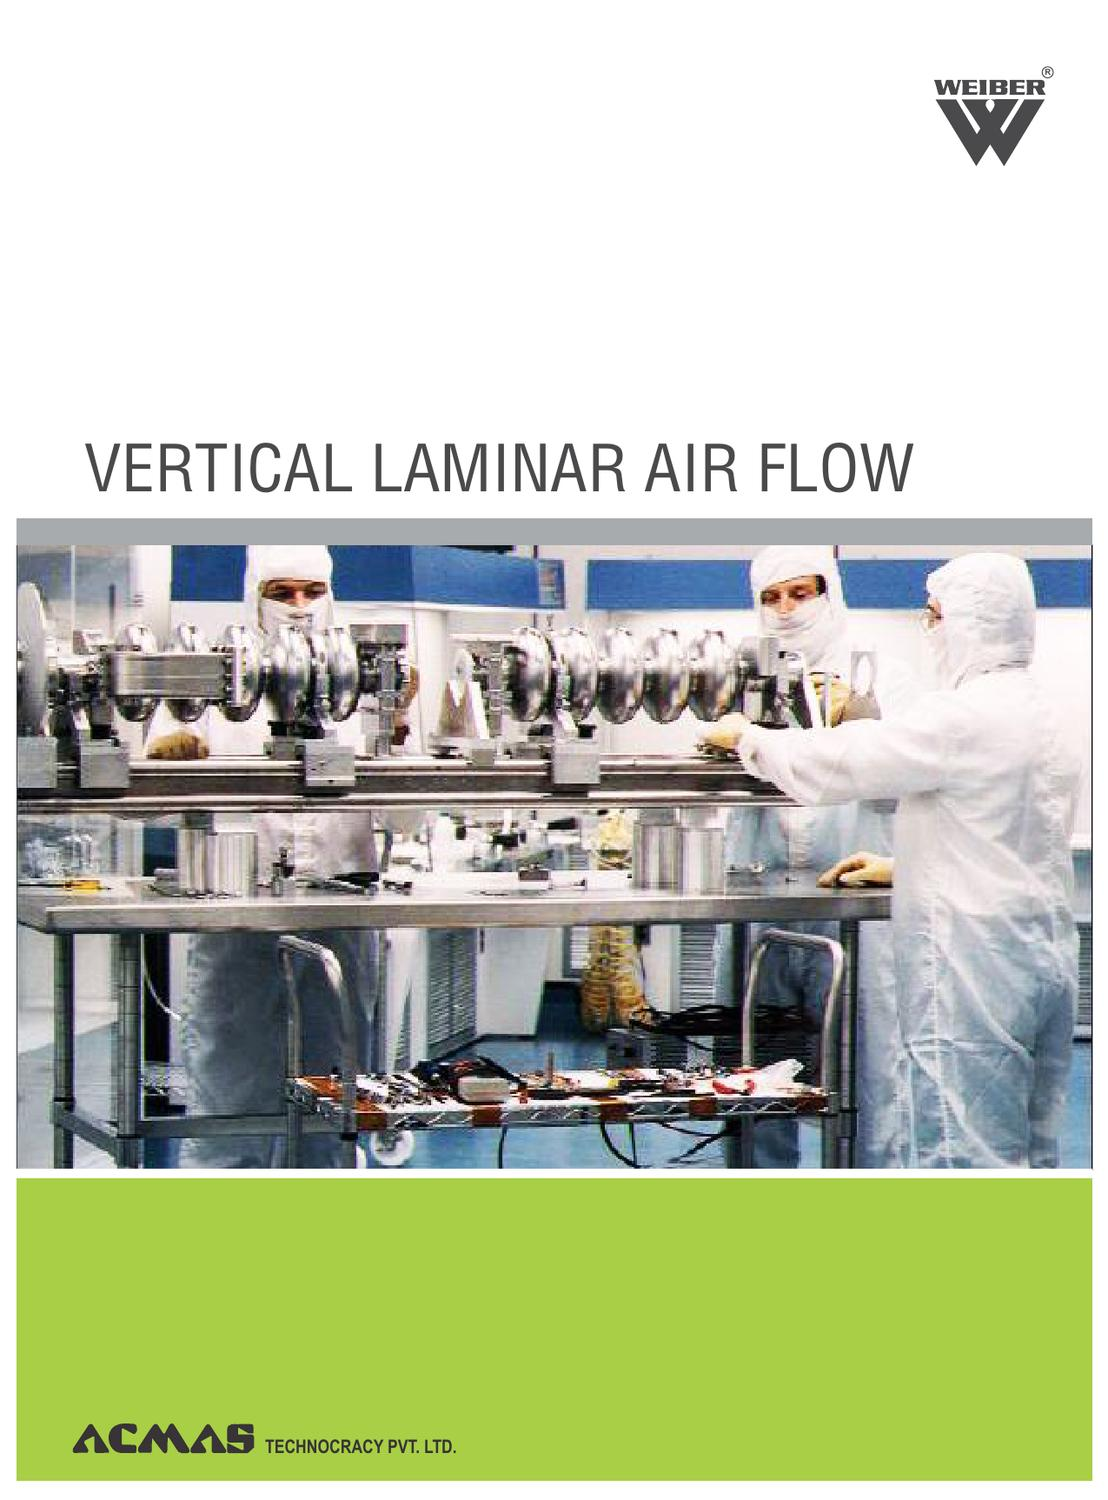 Laminar Air Flow Microbiology Vertical Laminar Air Flow Category By Acmas Technologies